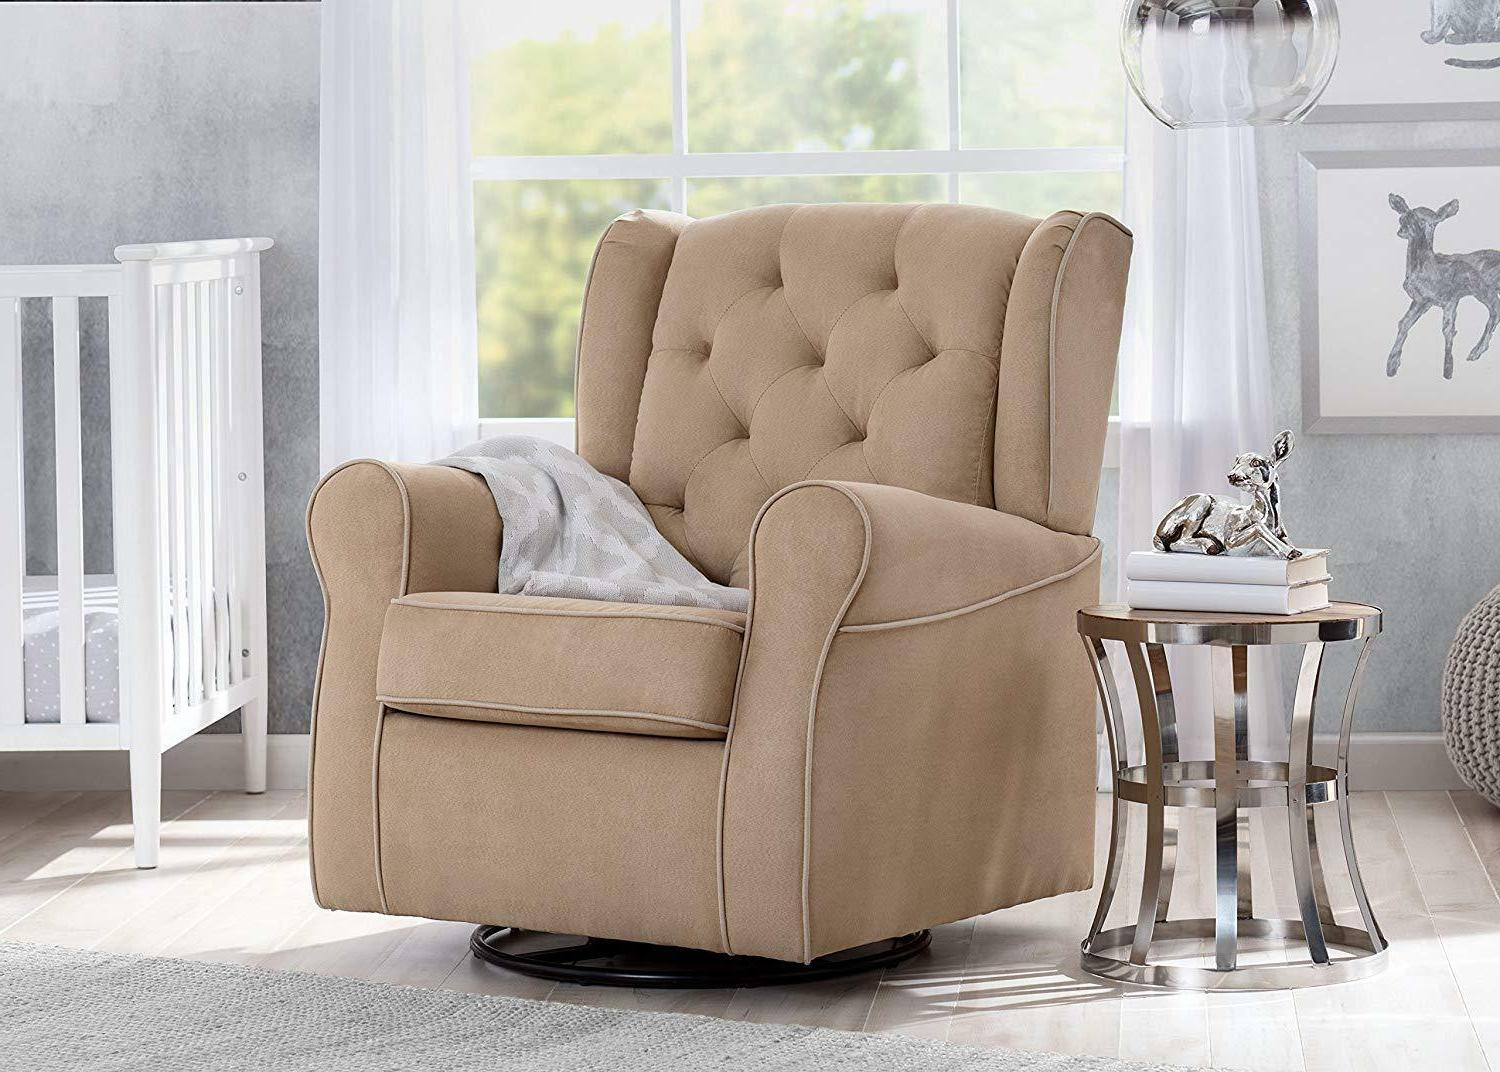 Delta Upholstered Glider Swivel Rocker Dove